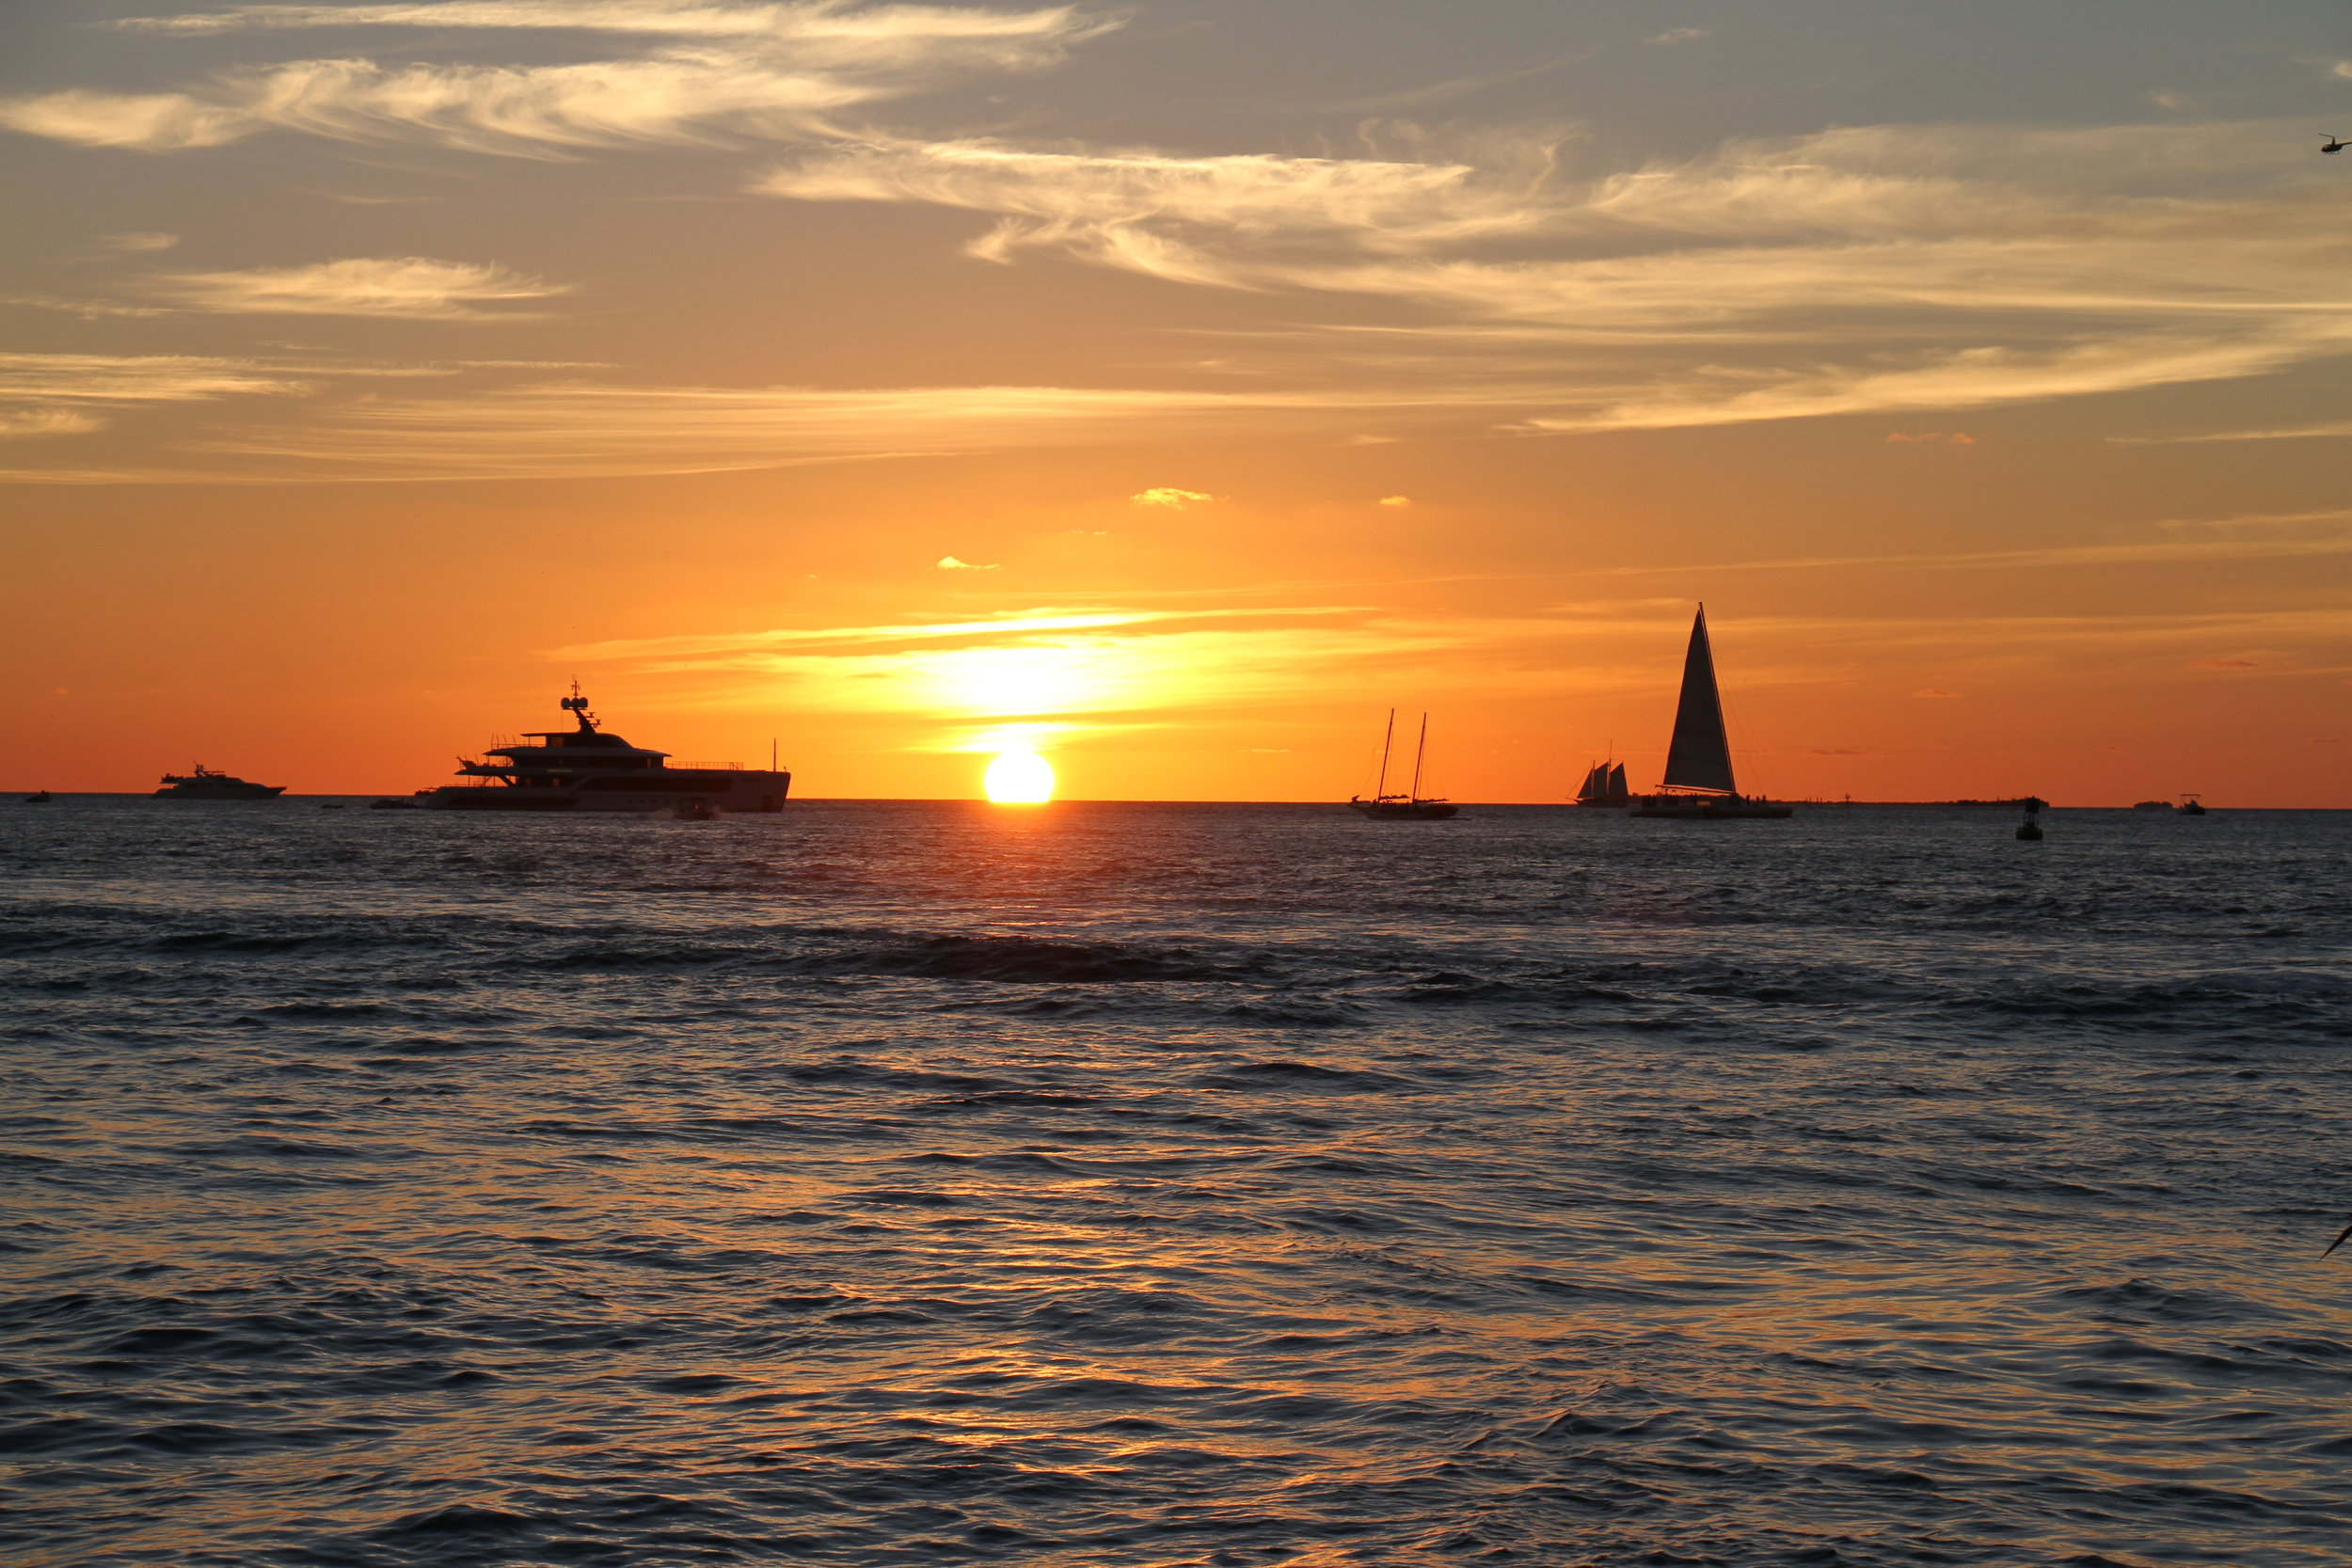 Sunset from Mallory Square in Key West